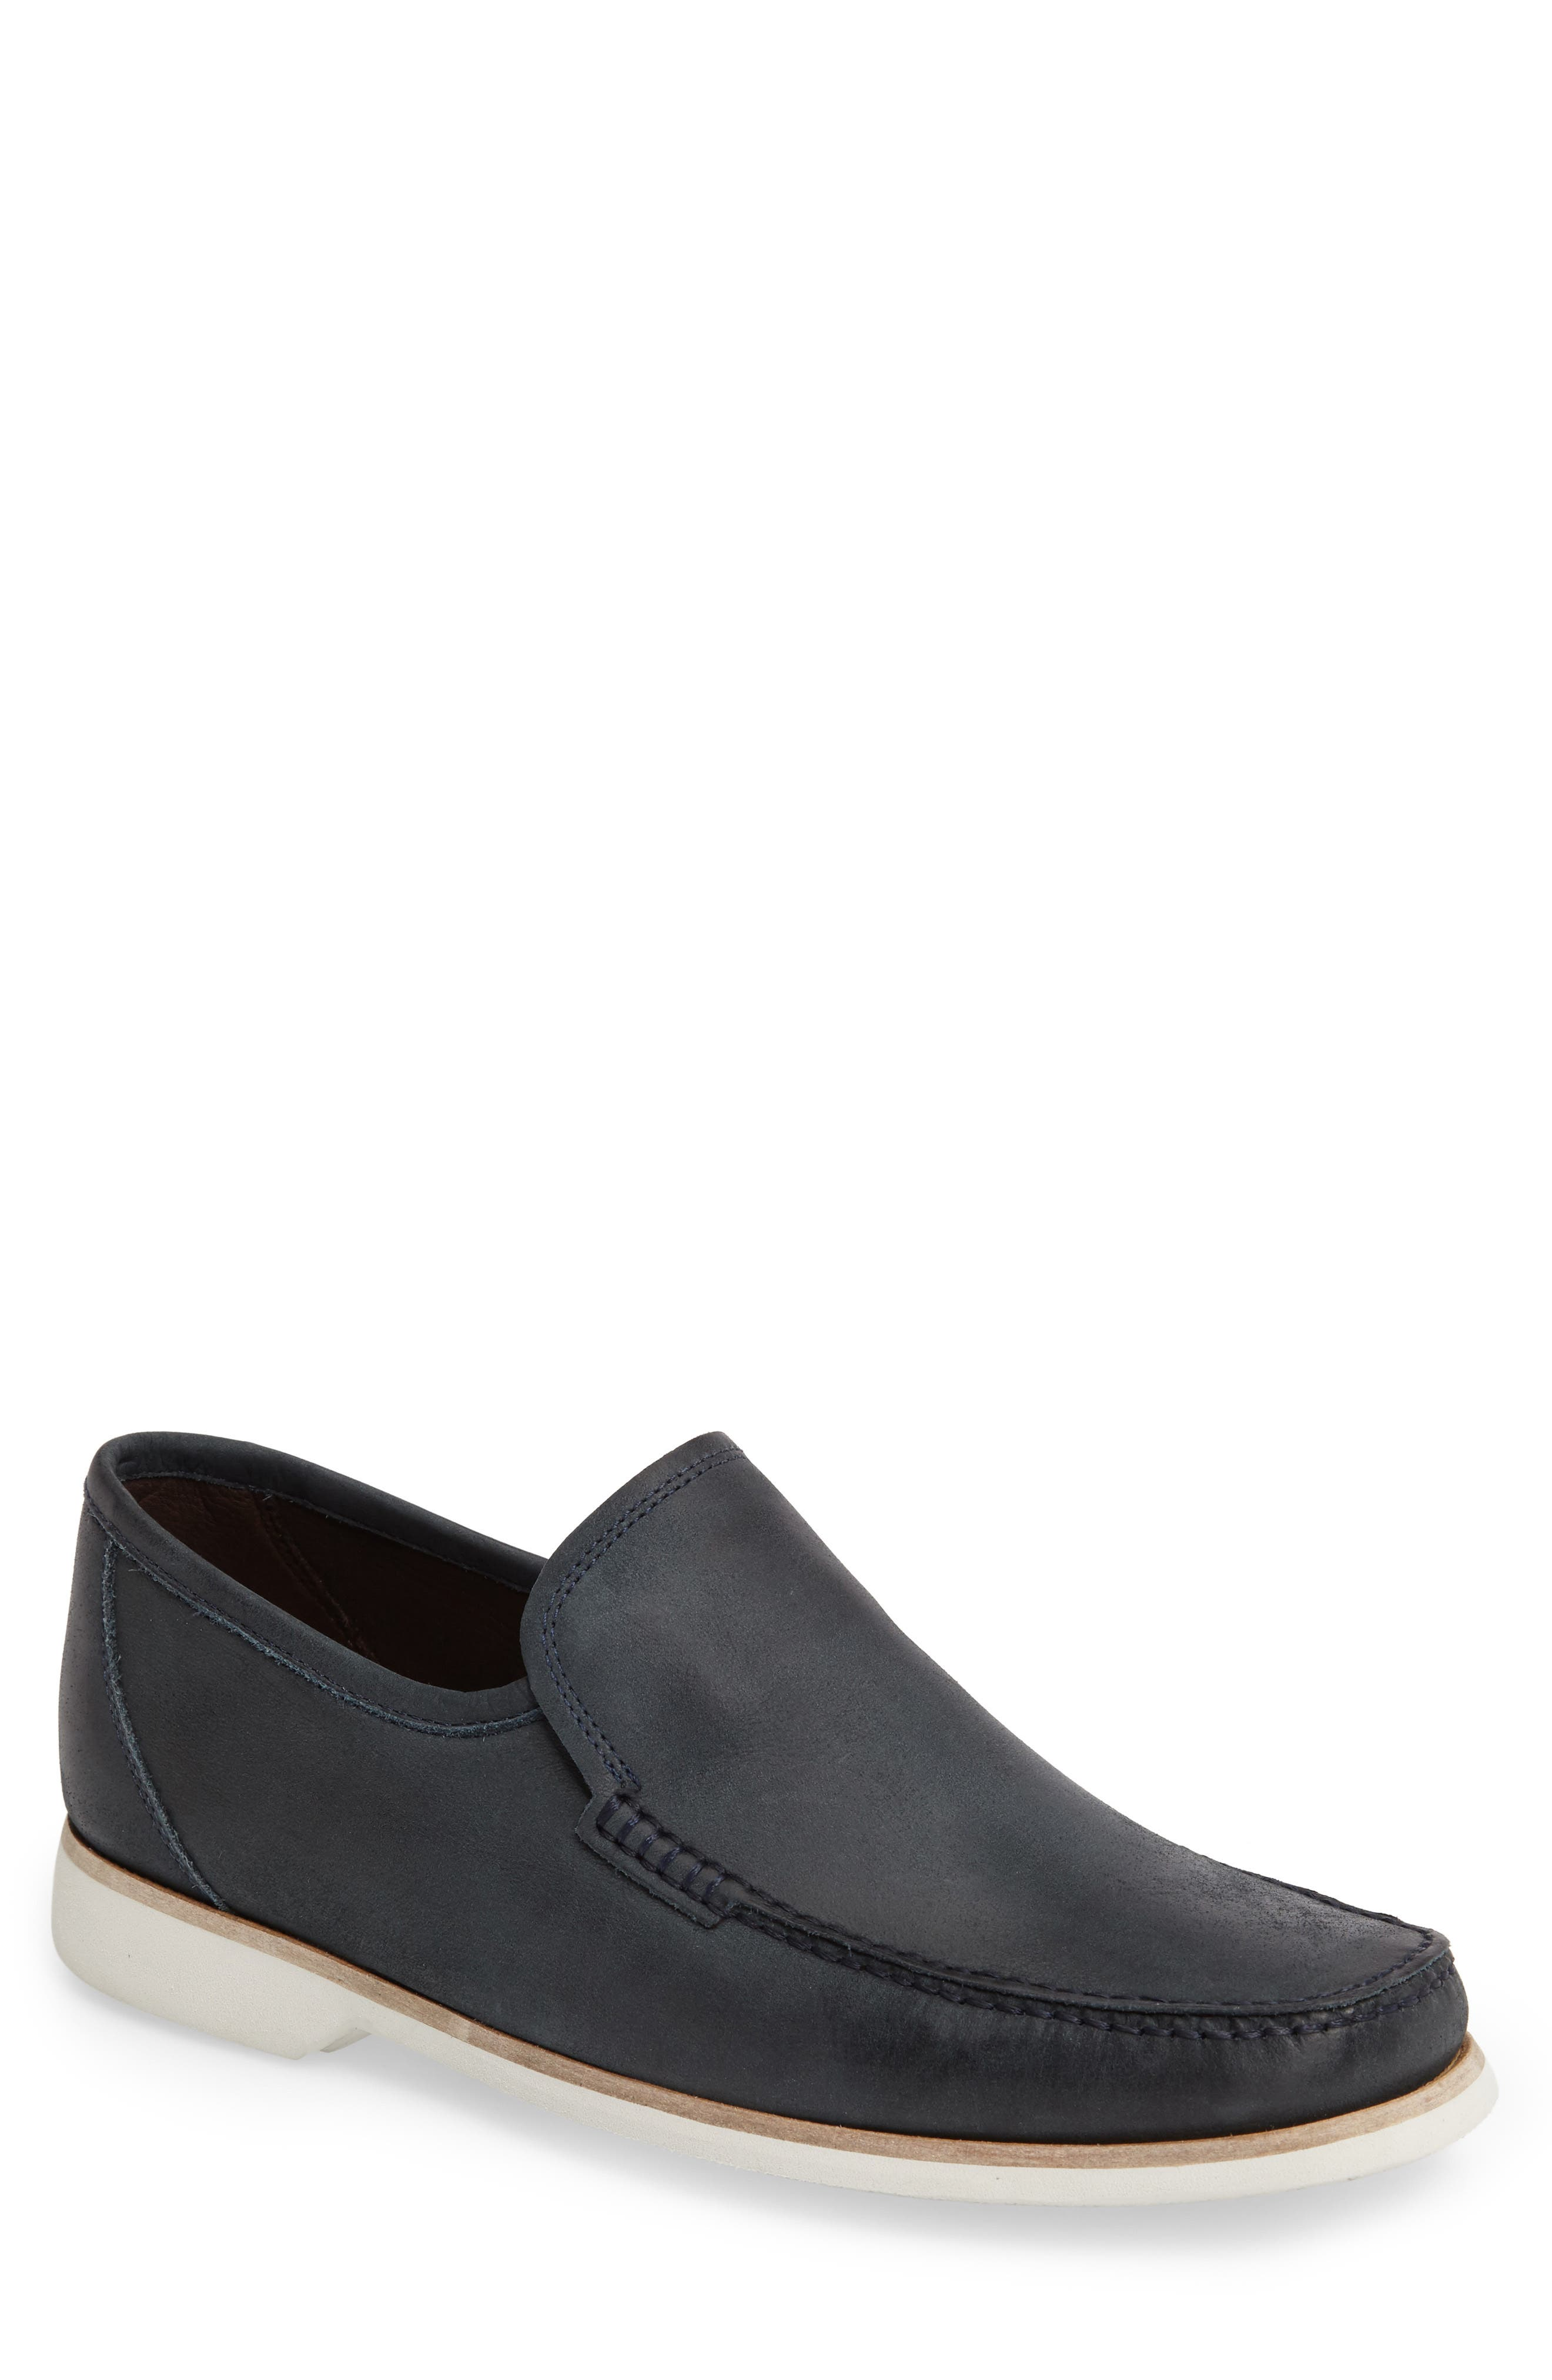 Alternate Image 1 Selected - Anatomic & Co Angra Loafer (Men)